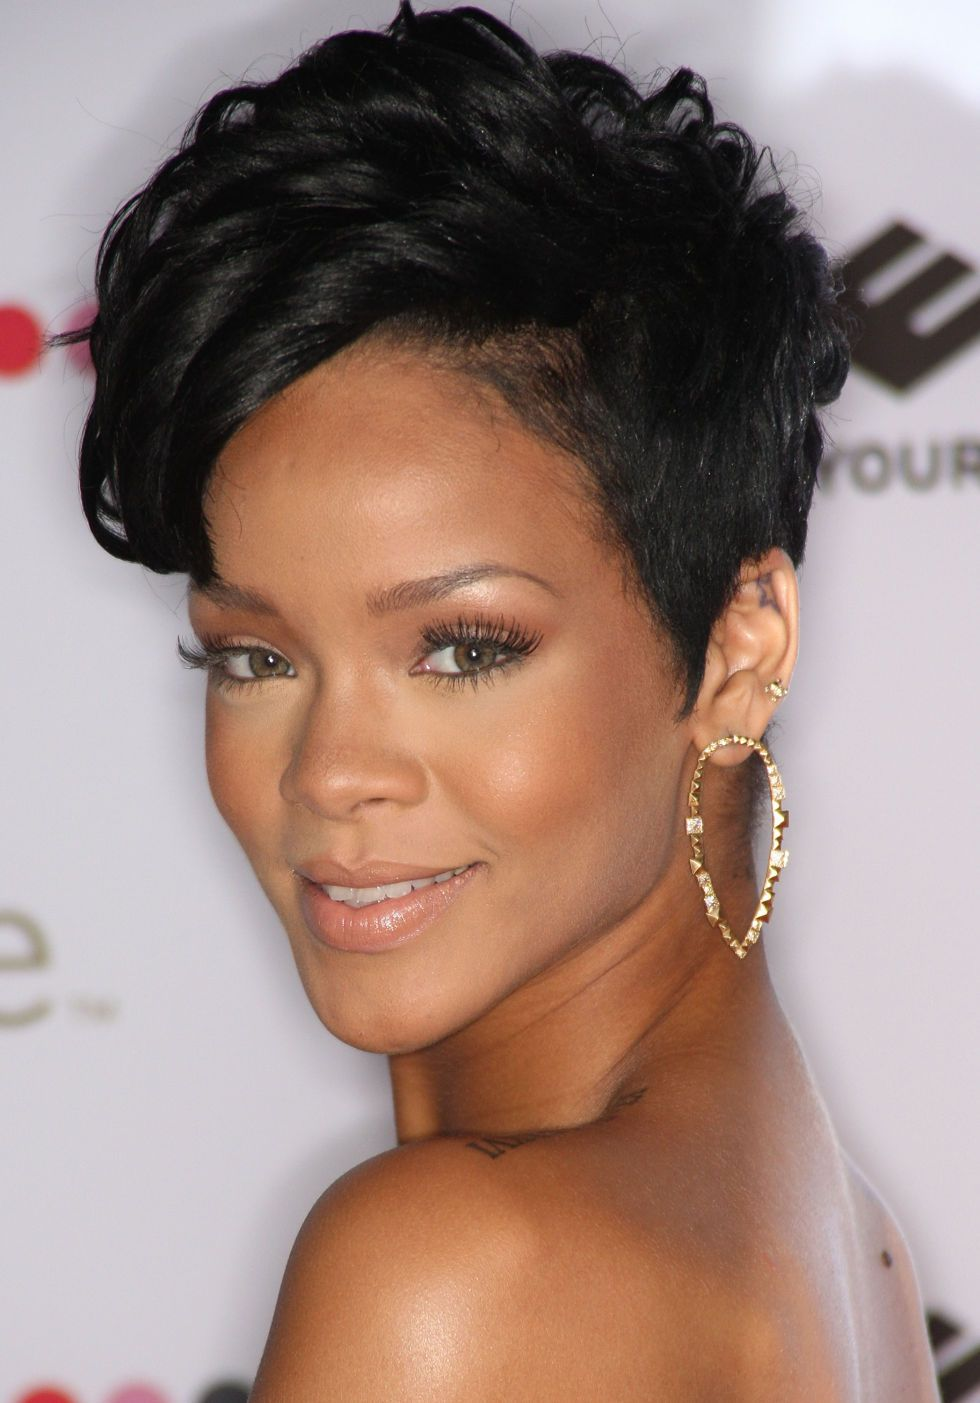 Rihanna Hairstyles Brilliant A Complete Guide To All Of Rihanna's Hairstyles  Hair  Pinterest